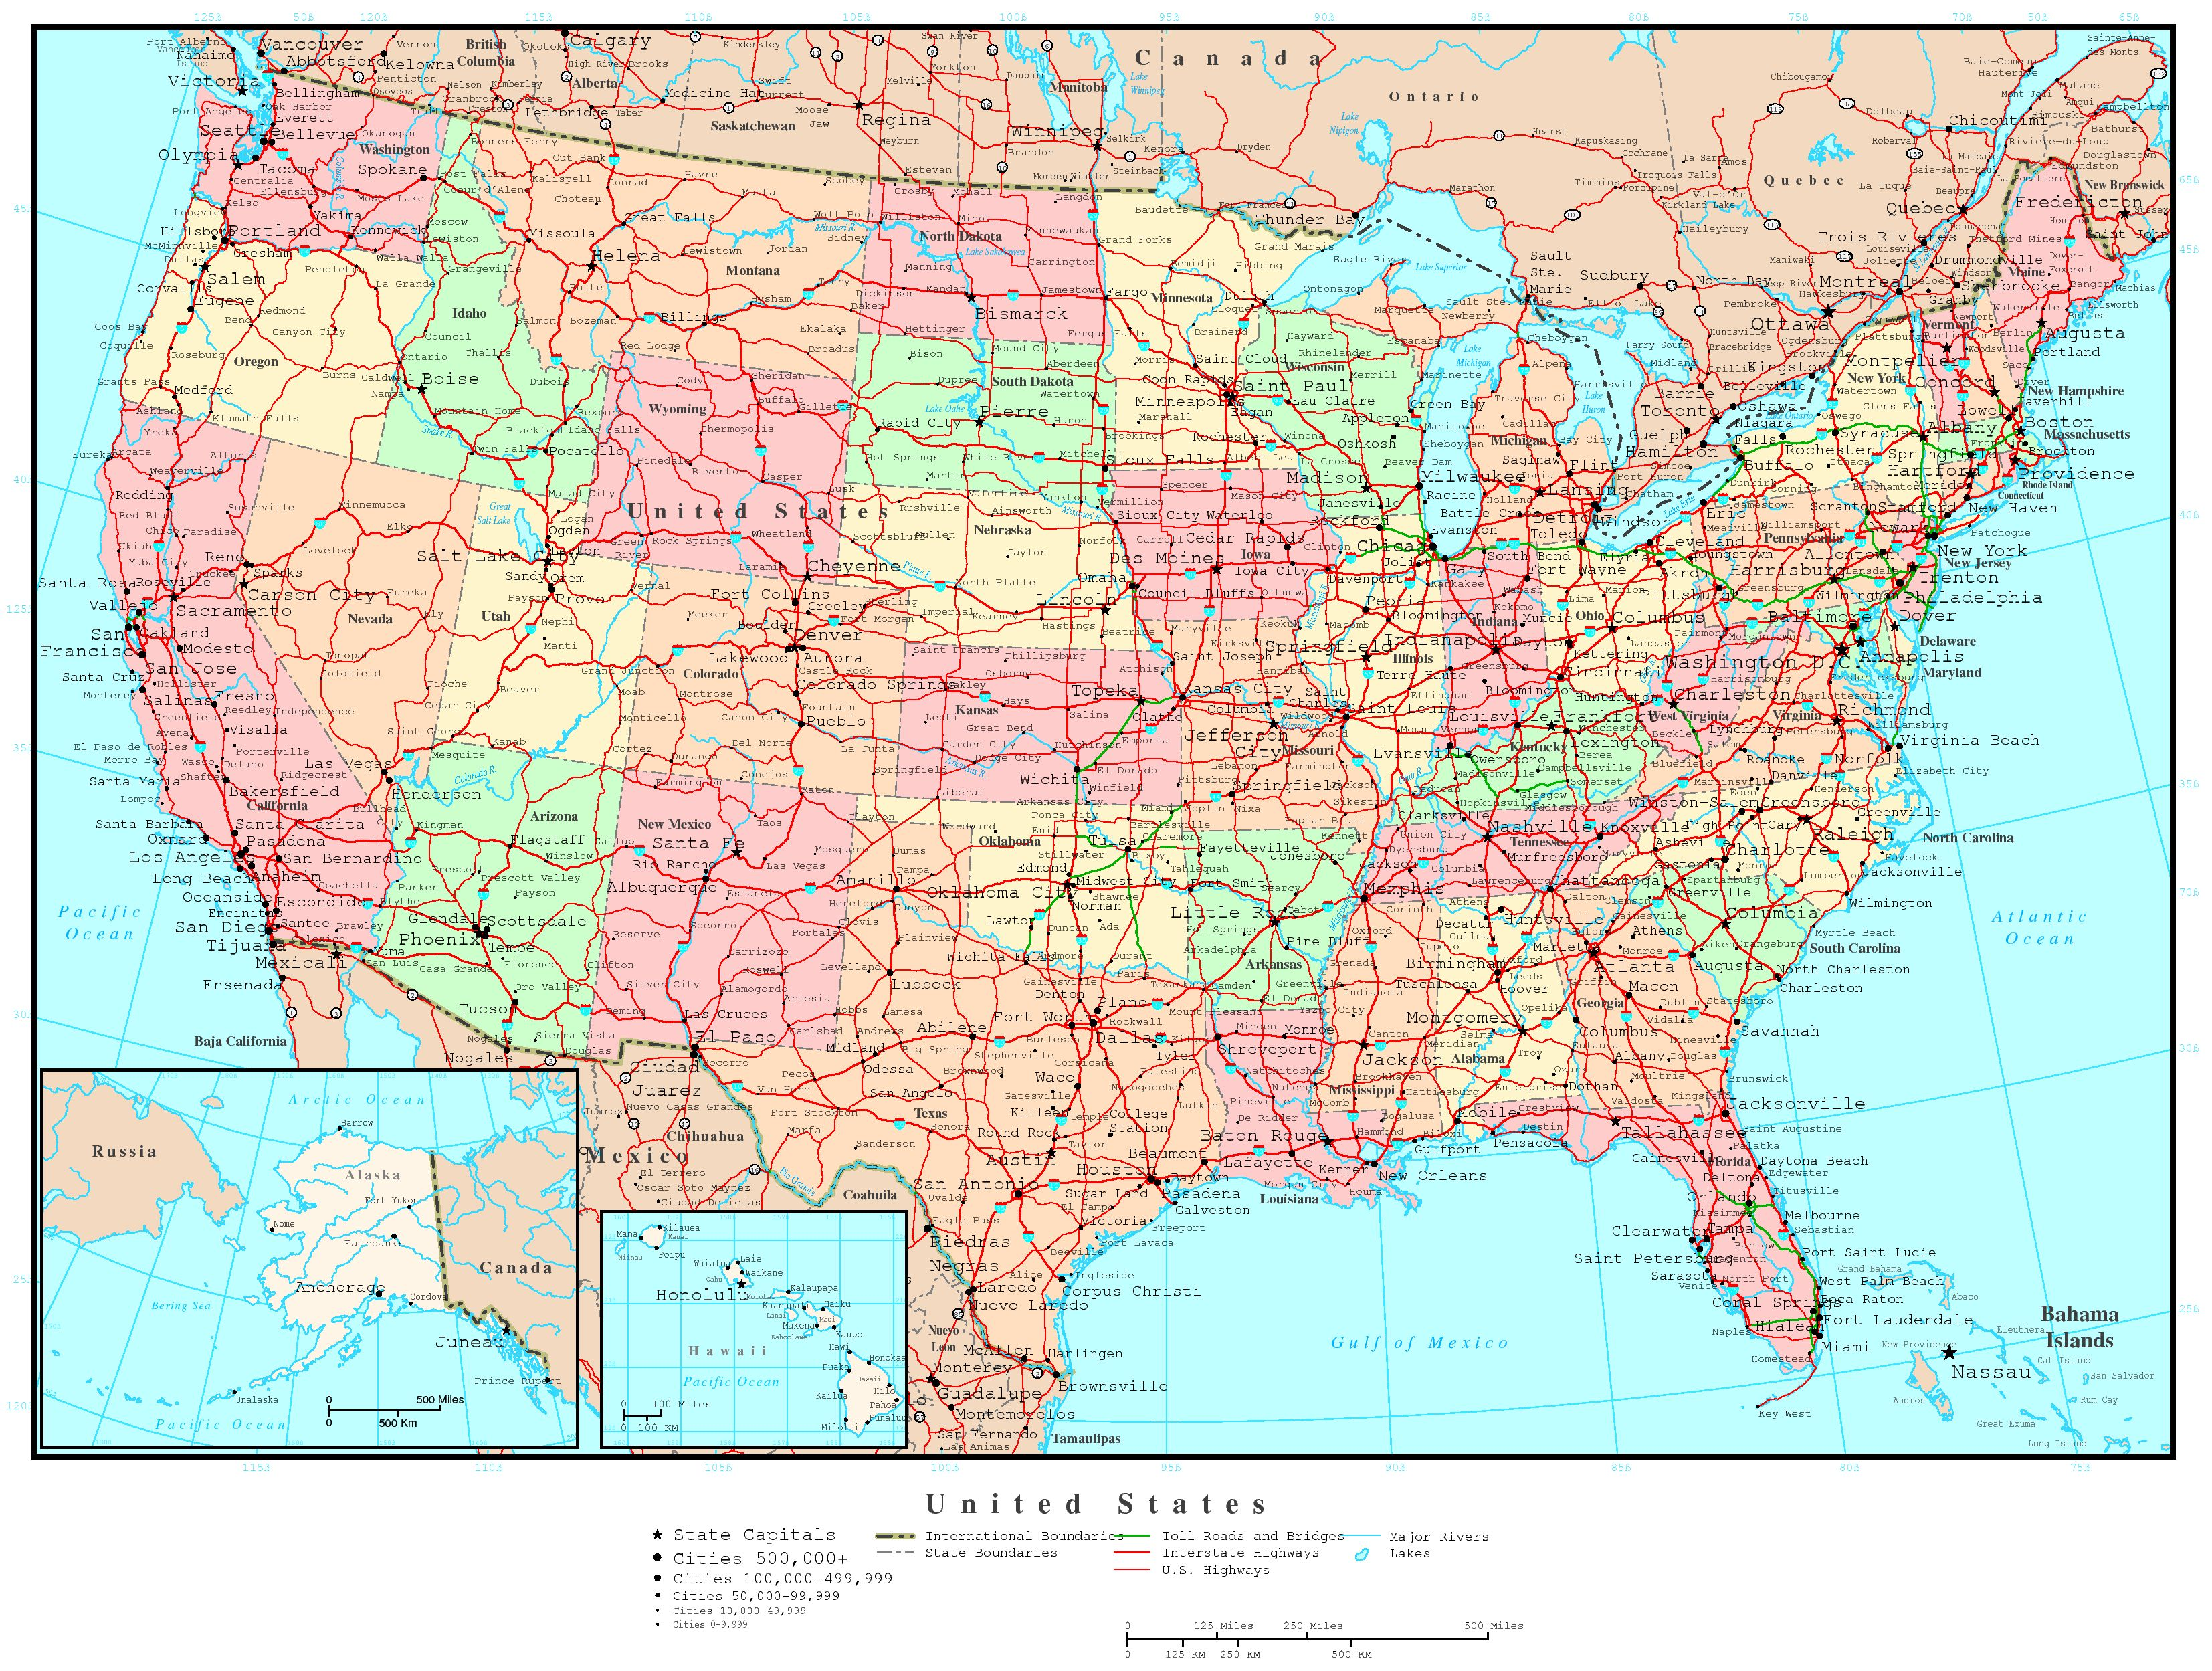 United States Printable Map - Usa map with major cities and highways